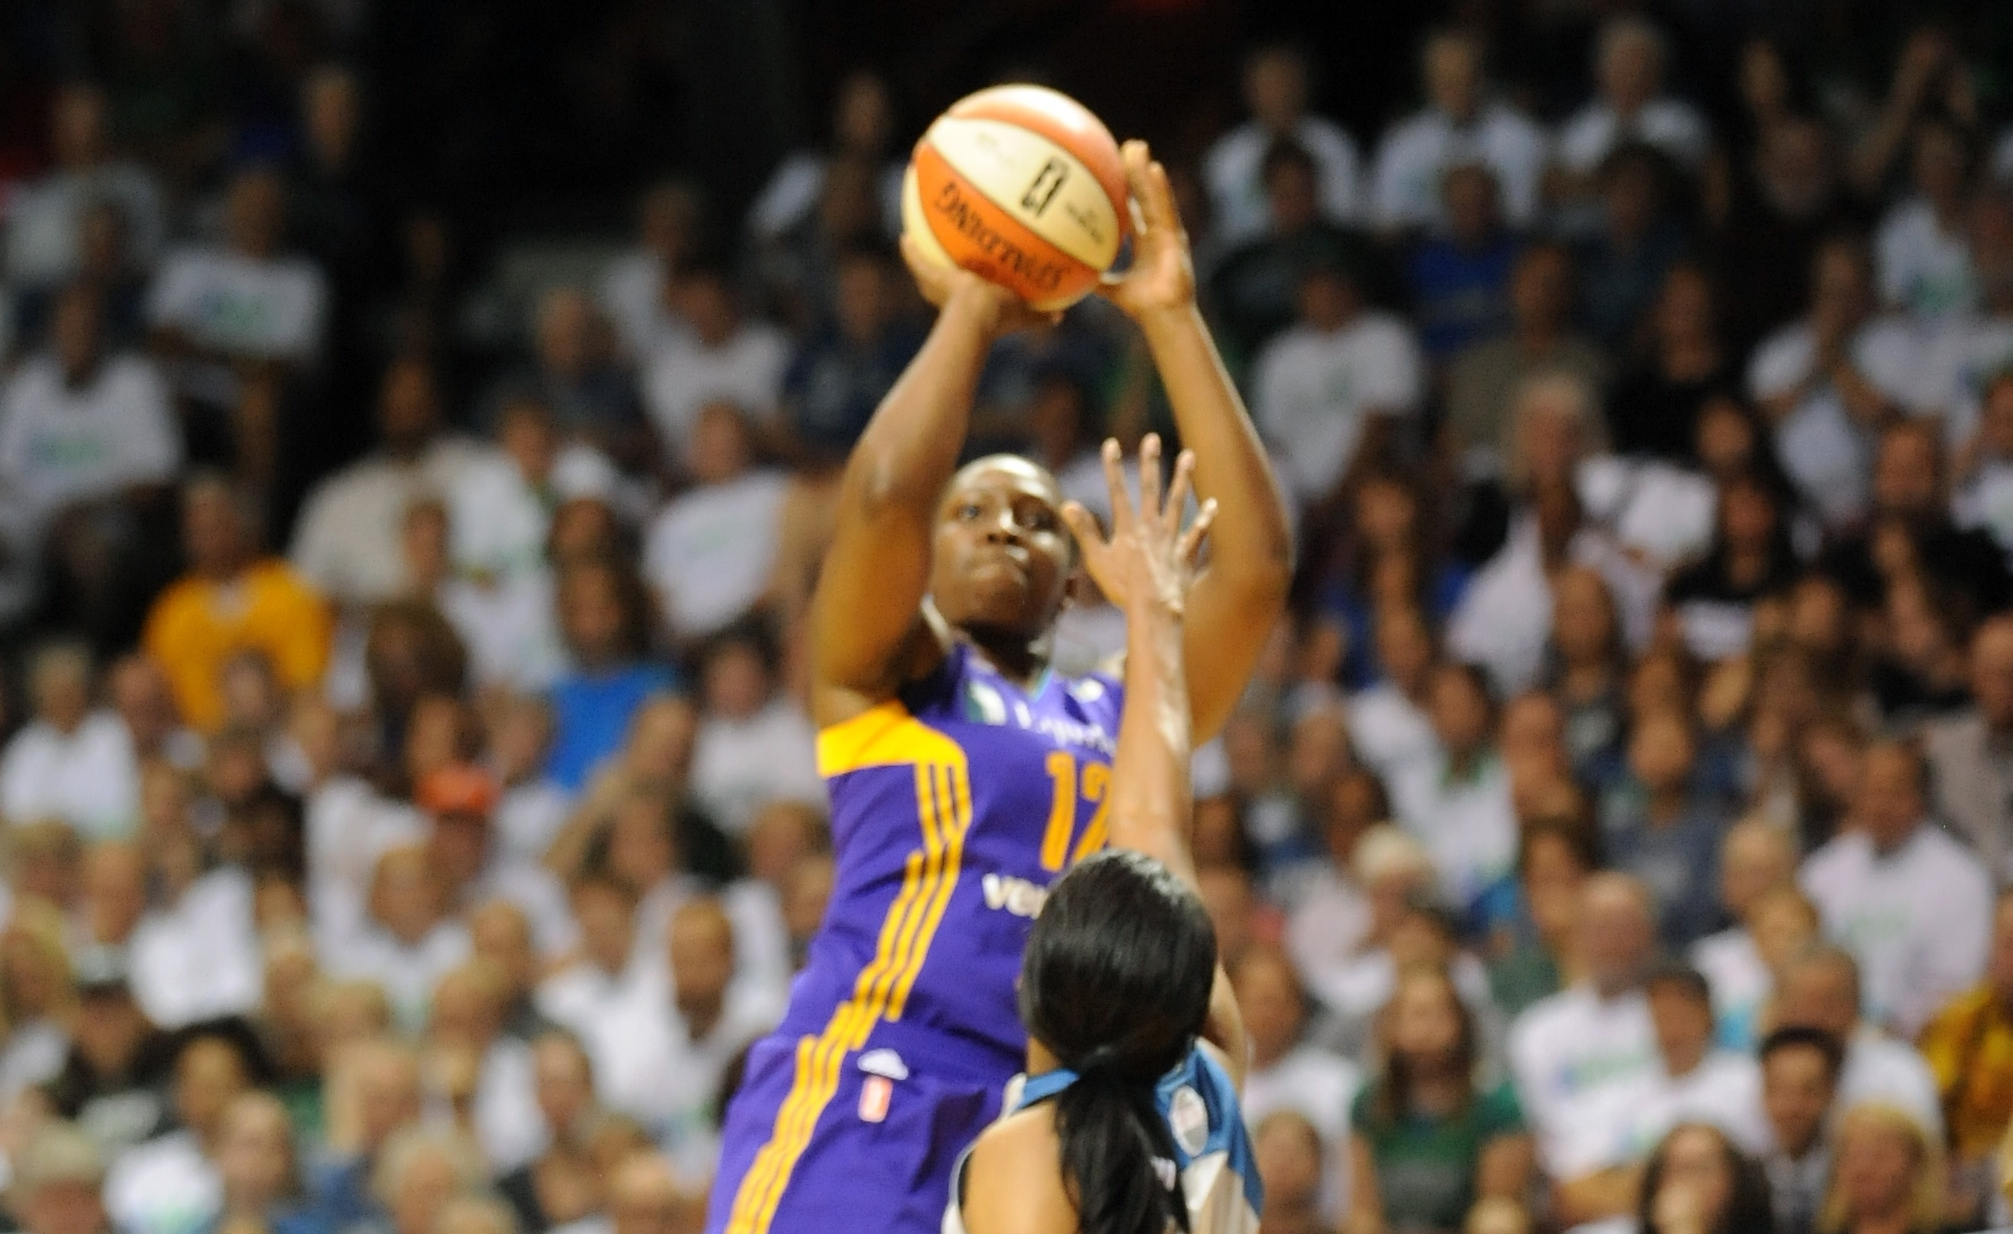 Chelsea Gray propels Sparks to victory in Finals game one, Los Angeles tops Minnesota 85-84